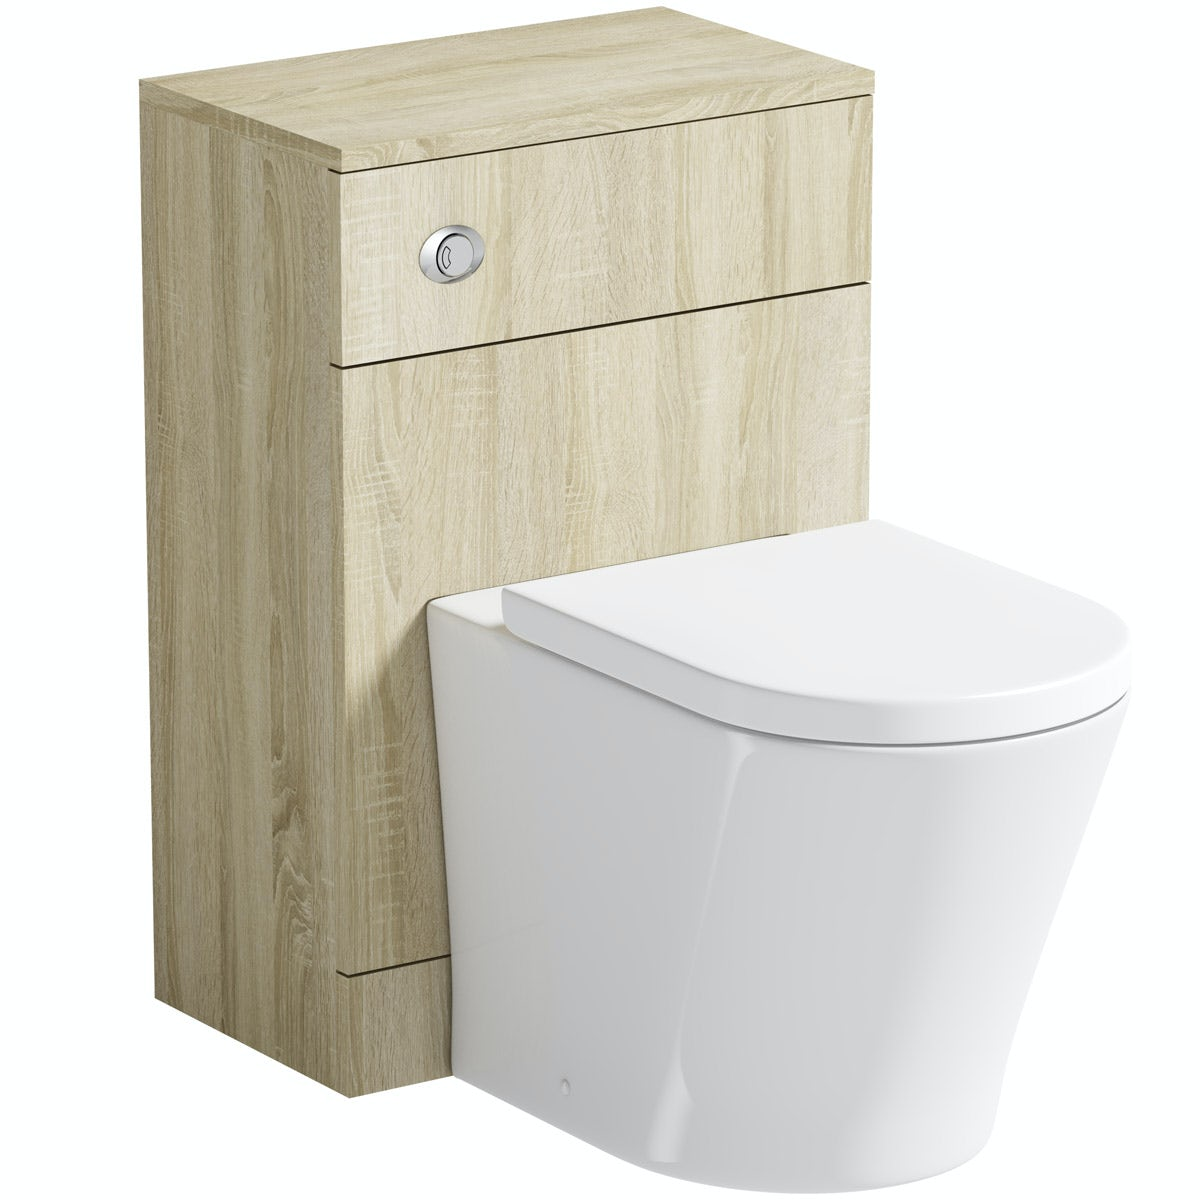 Orchard Eden oak slimline back to wall unit with  contemporary toilet and seat